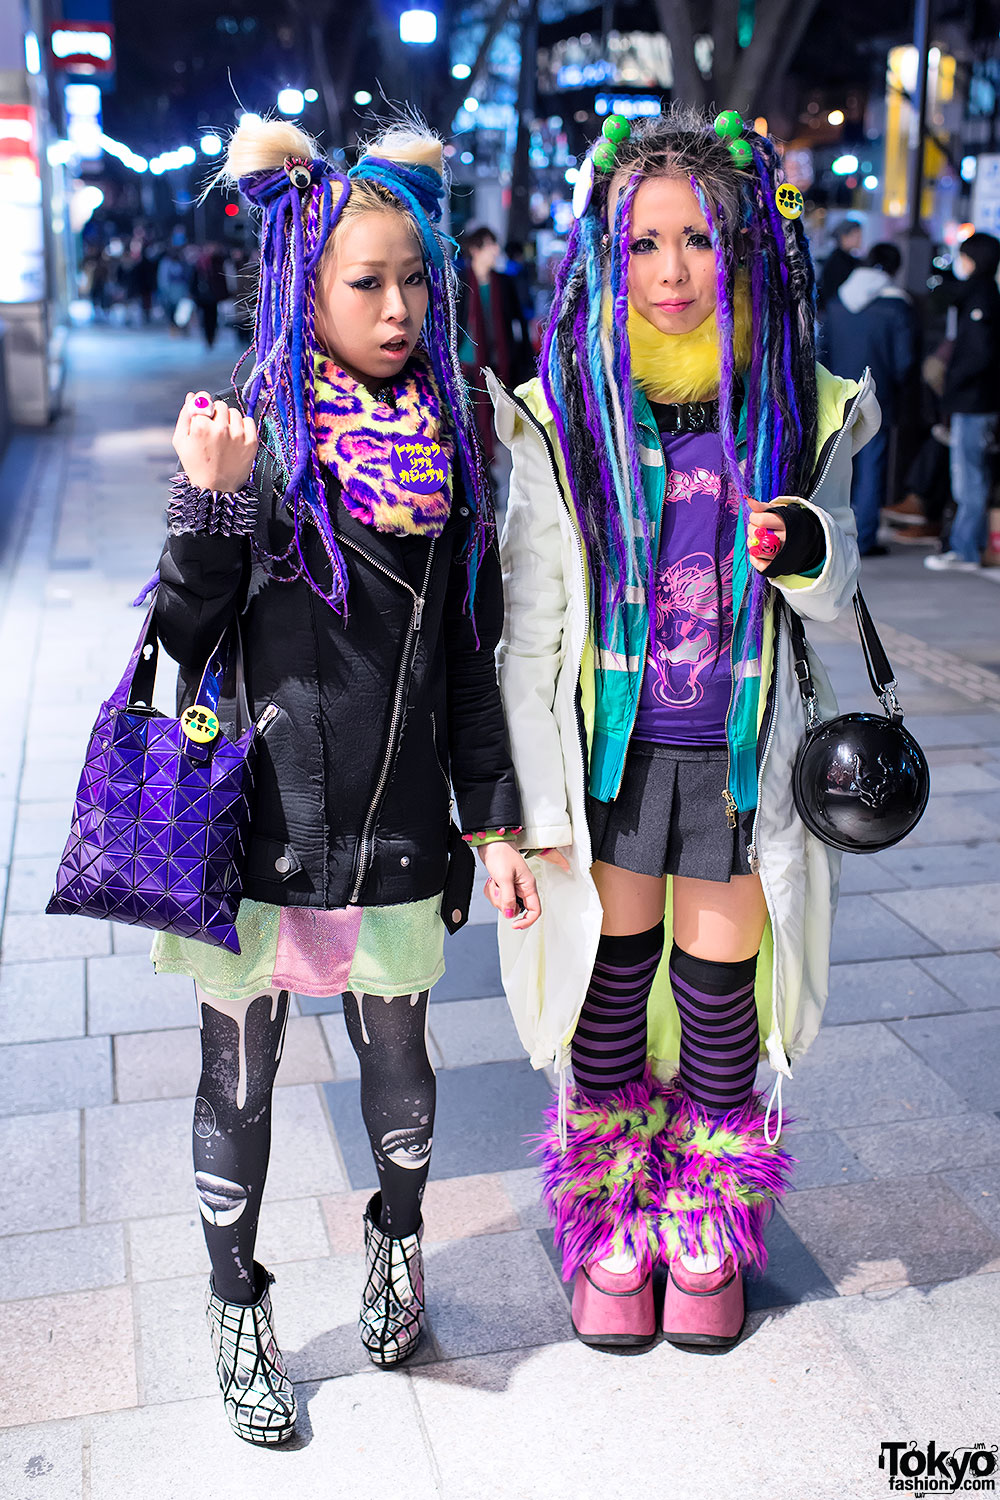 Harajuku Girls In Colorful Fashion Tokyo Fashion News